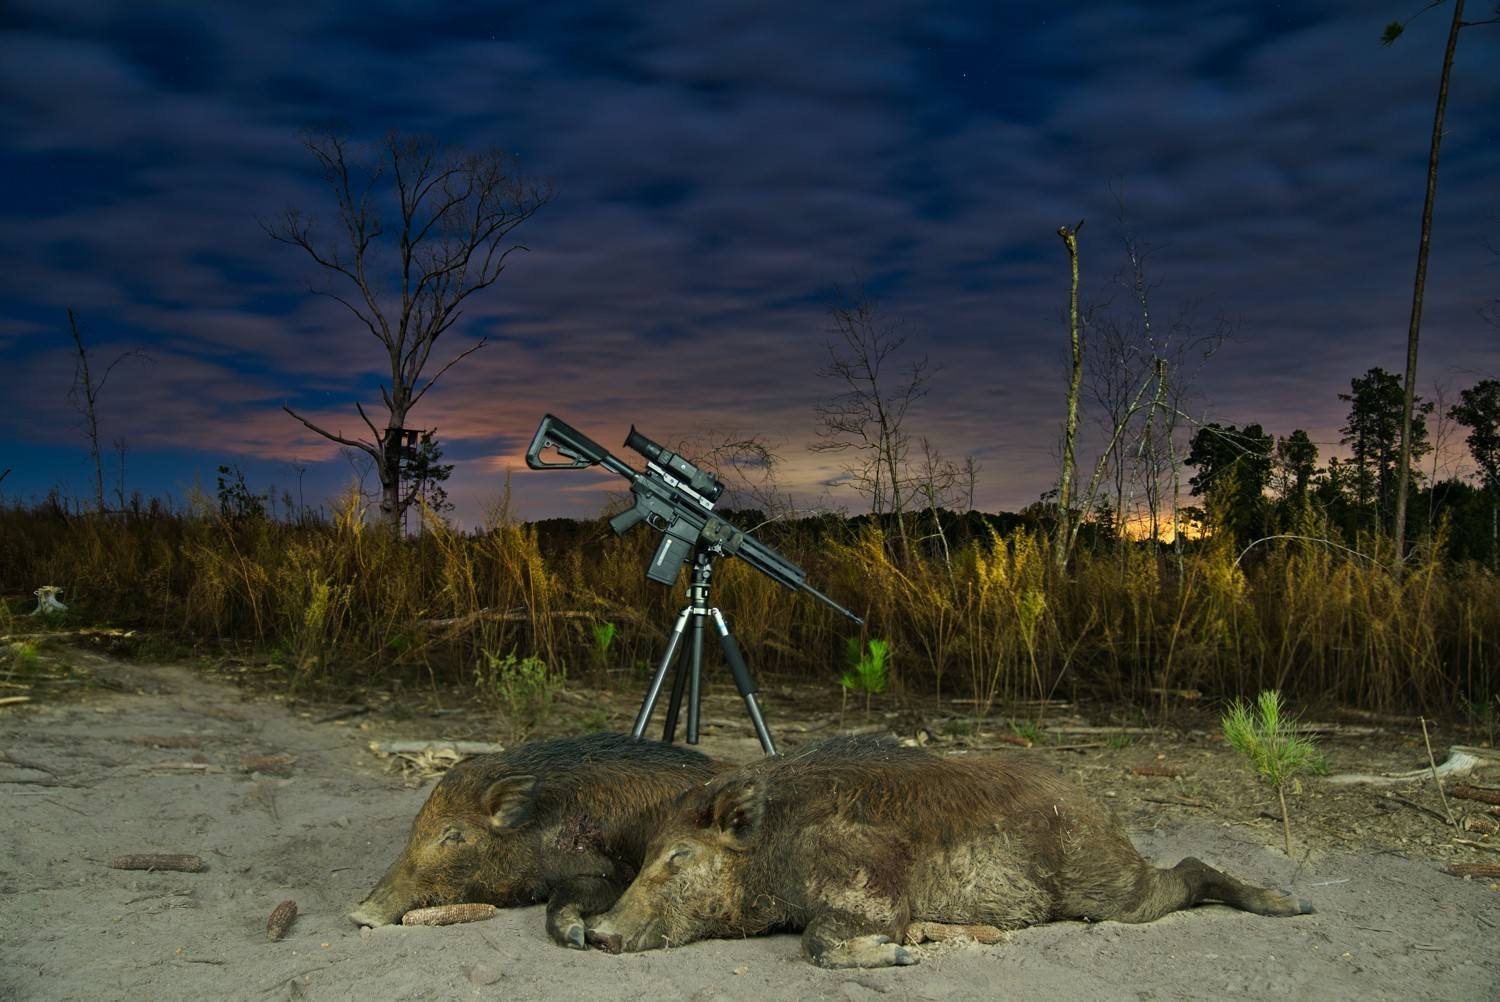 Making The Most Of Loosening Night Hunt Rules